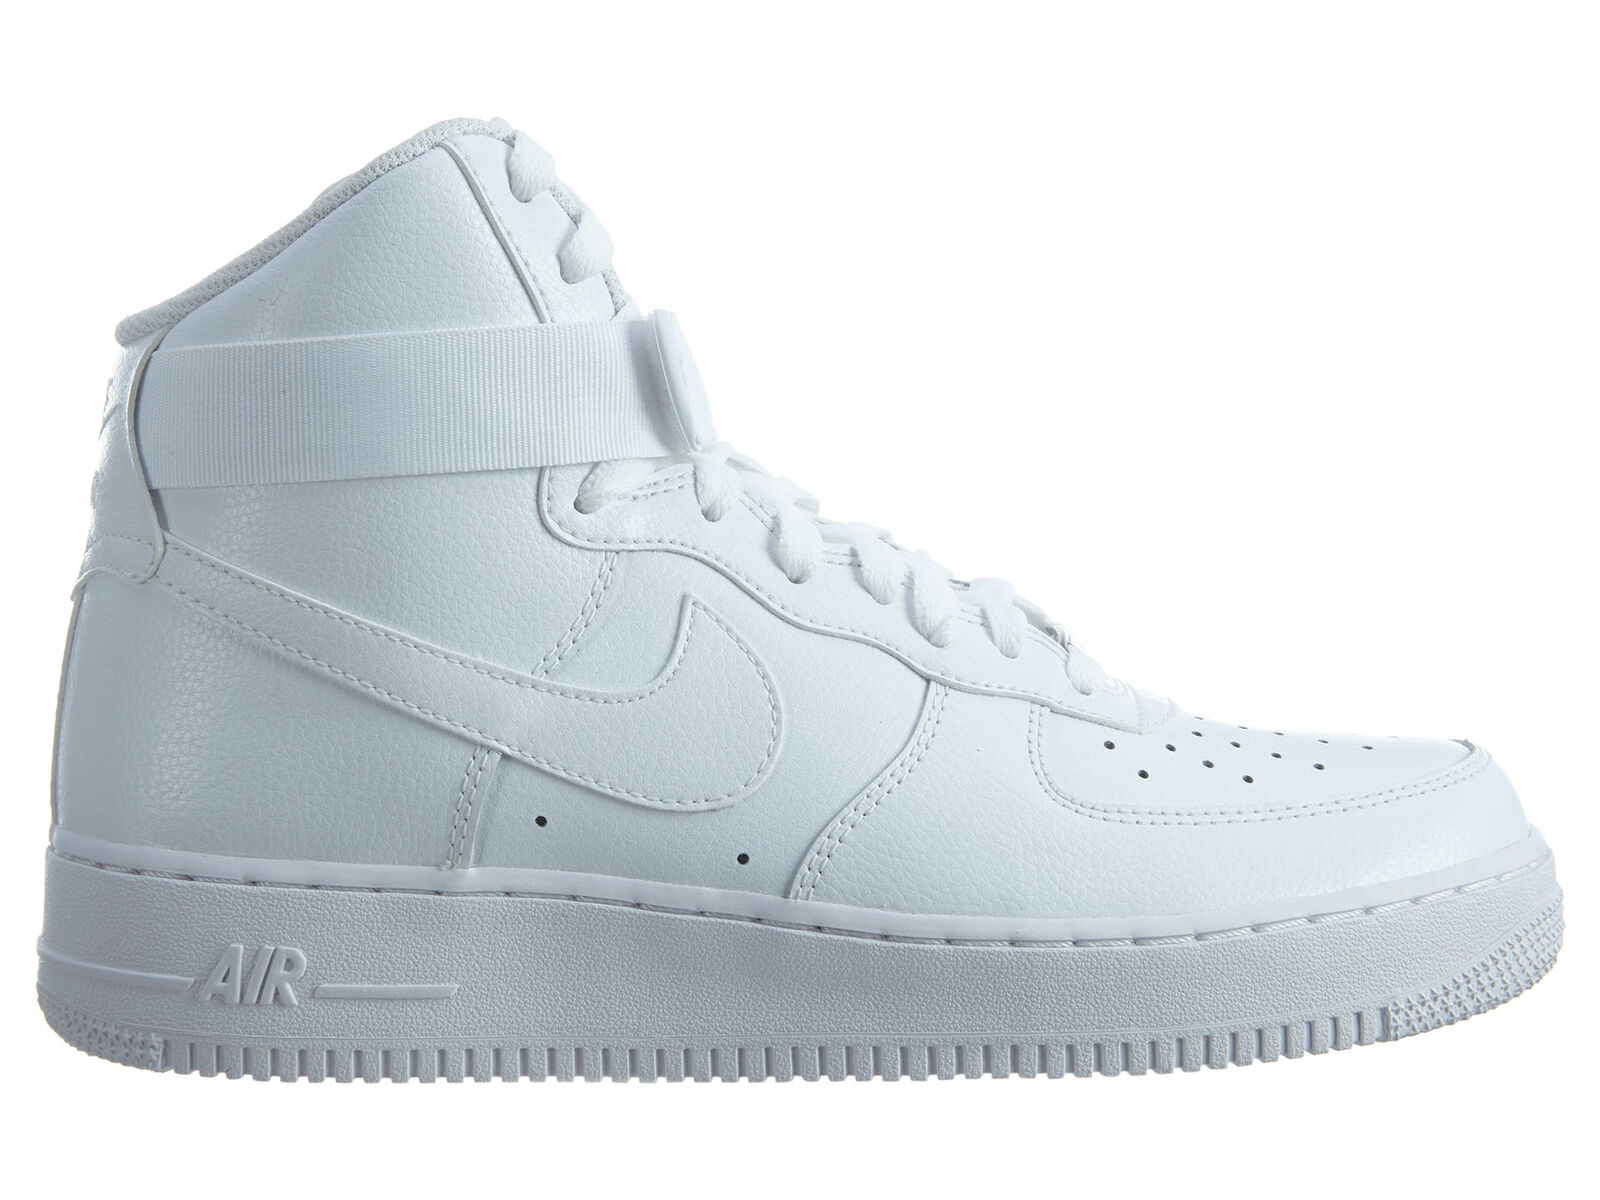 Nike Air Force 1 High '07 Mens 315121-115 White Leather Athletic shoes Size 8